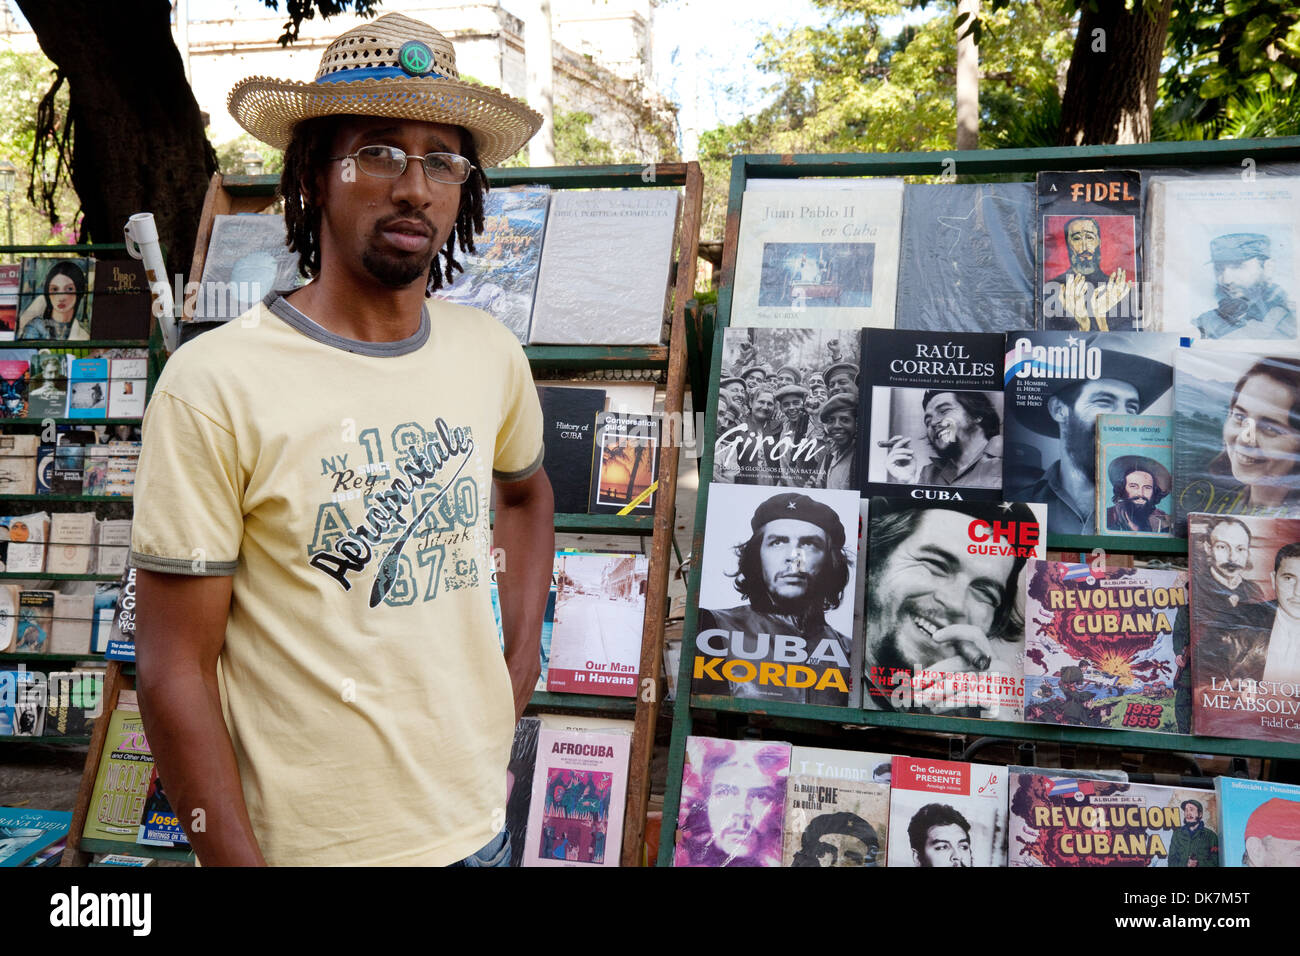 A cuban bookseller and stall of second hand books mainly about the revolution, Plaza de Armas square market, , Havana cuba, Caribbean, Latin America - Stock Image